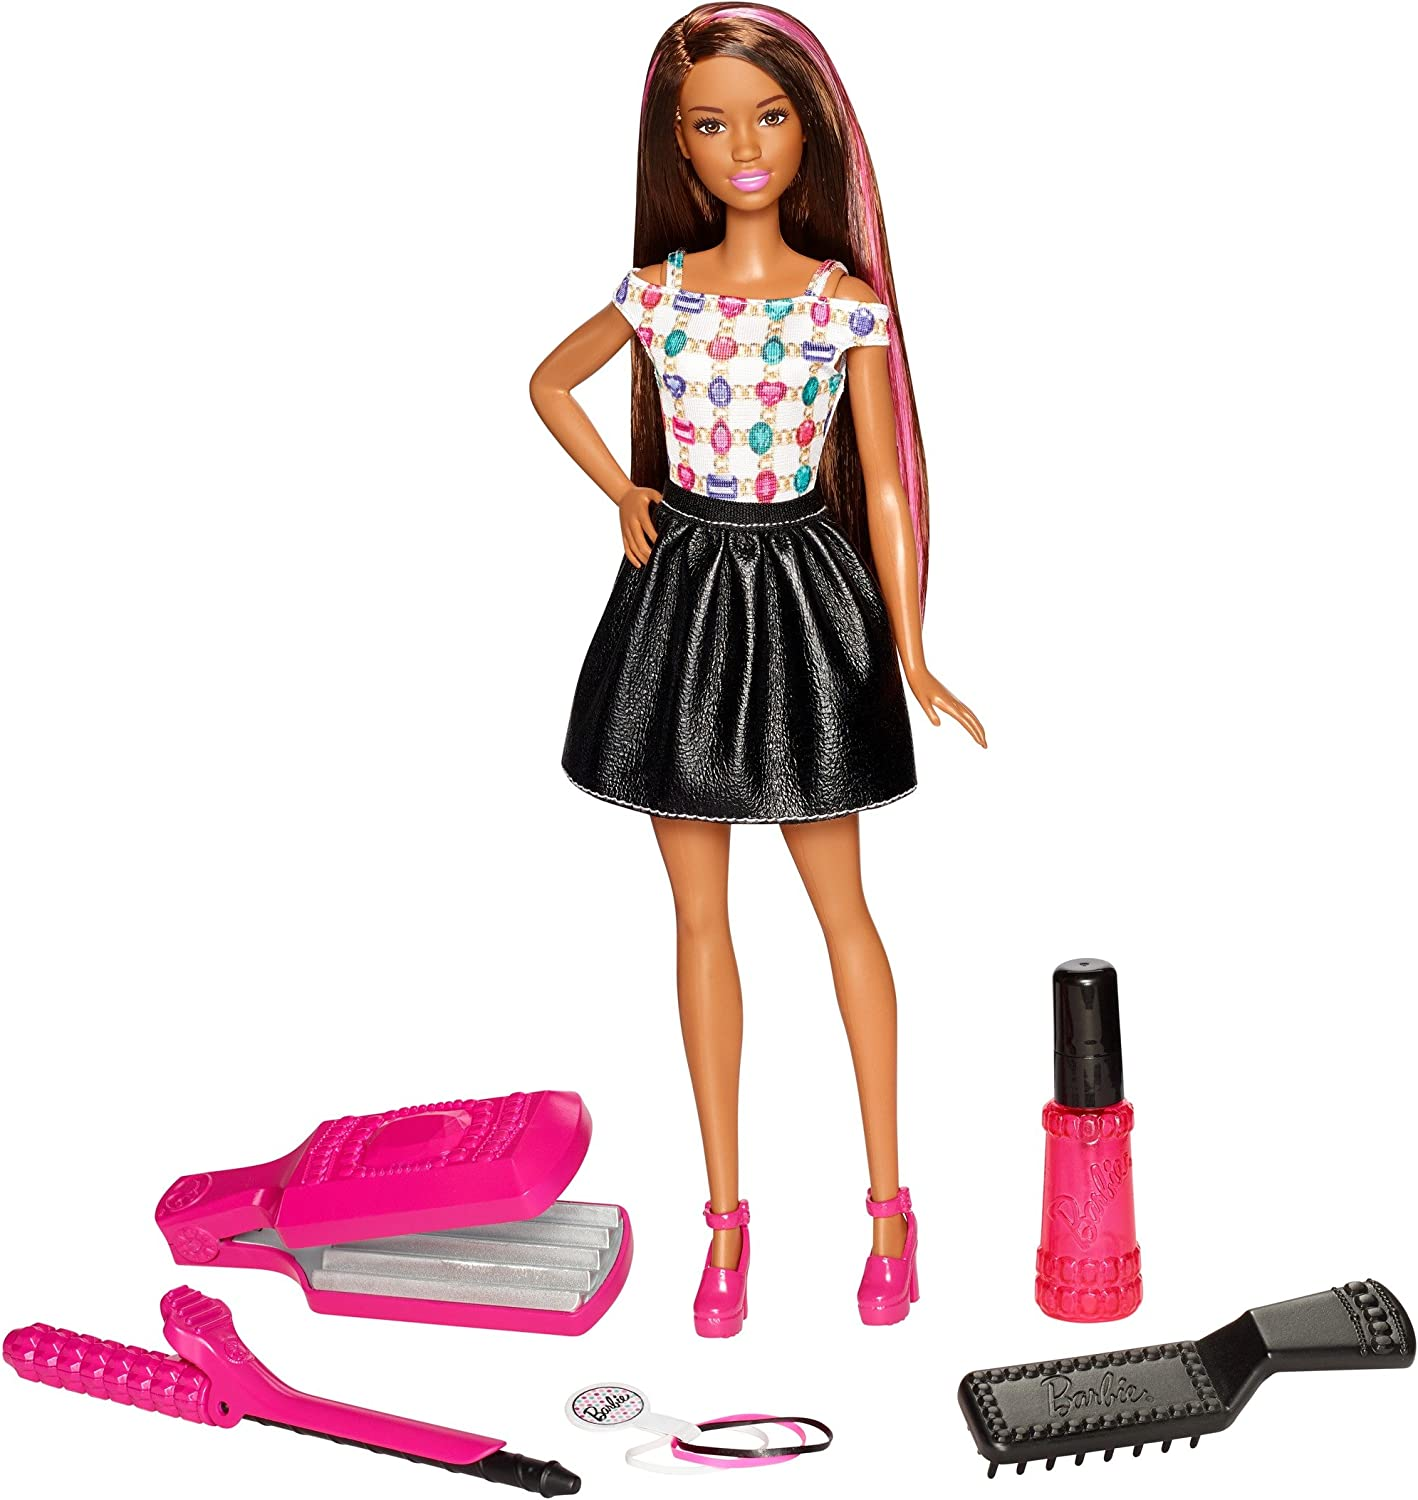 Barbie D.I.Y. Crimps & Curls Doll